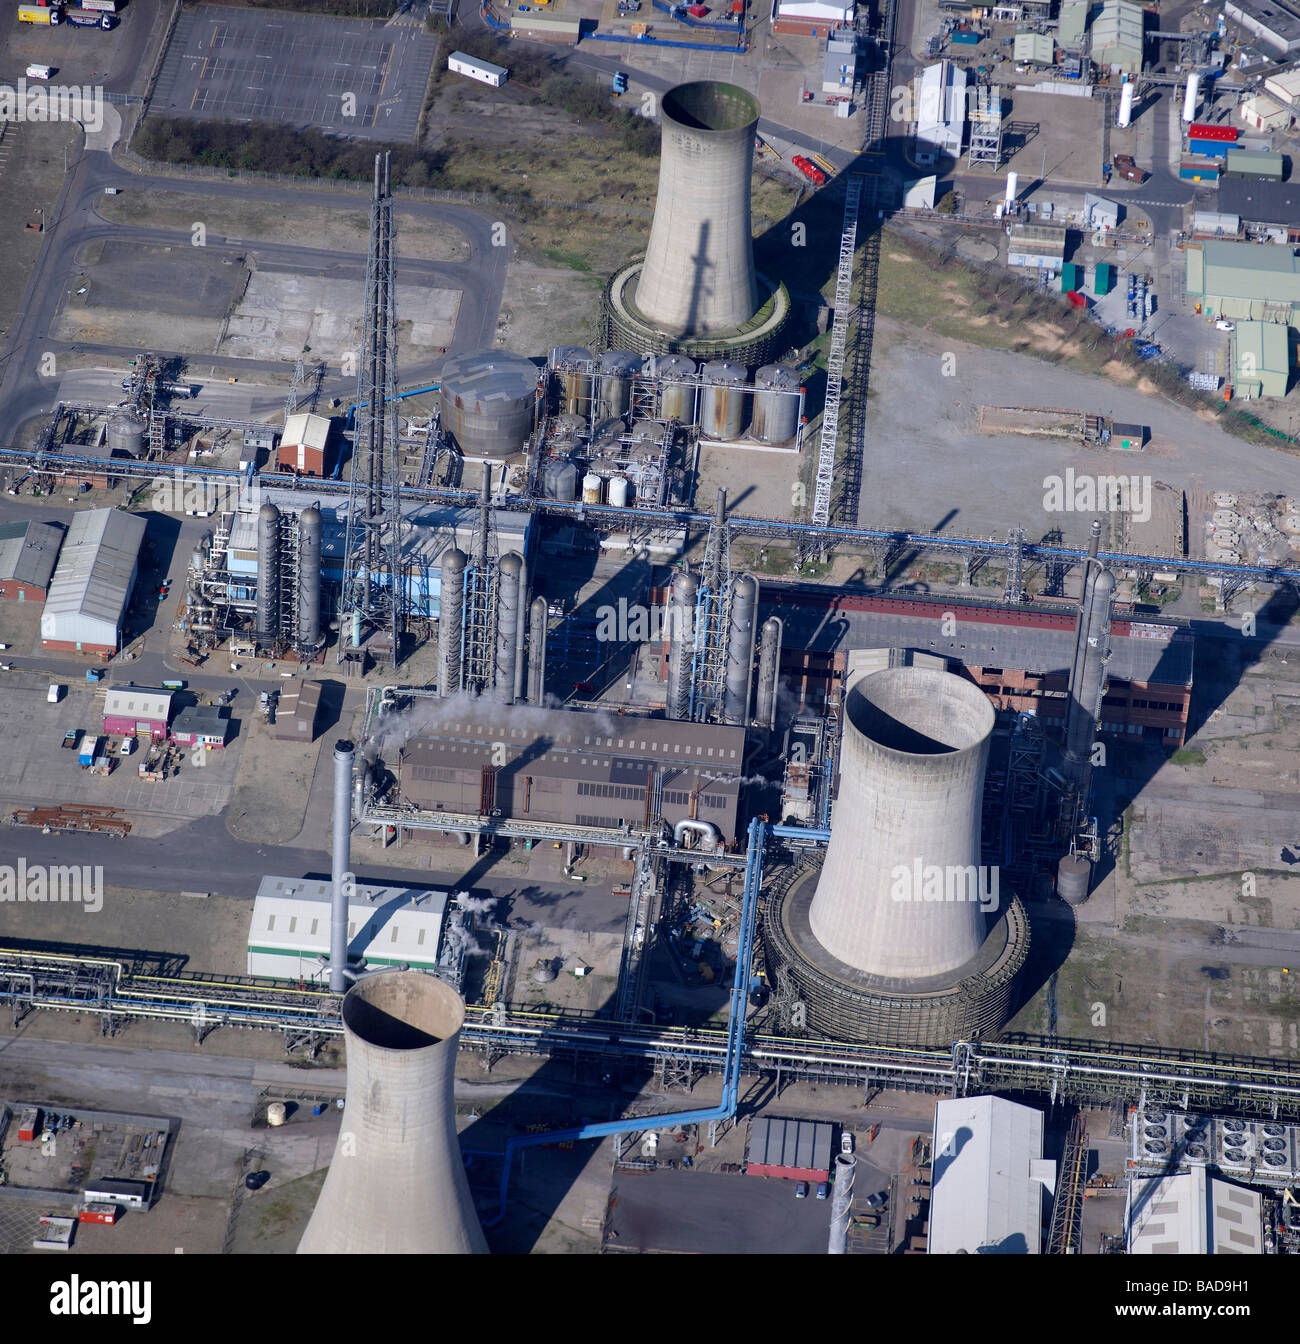 Close up of Chemical works, Billingham, Teeside, Northeast England - Stock Image